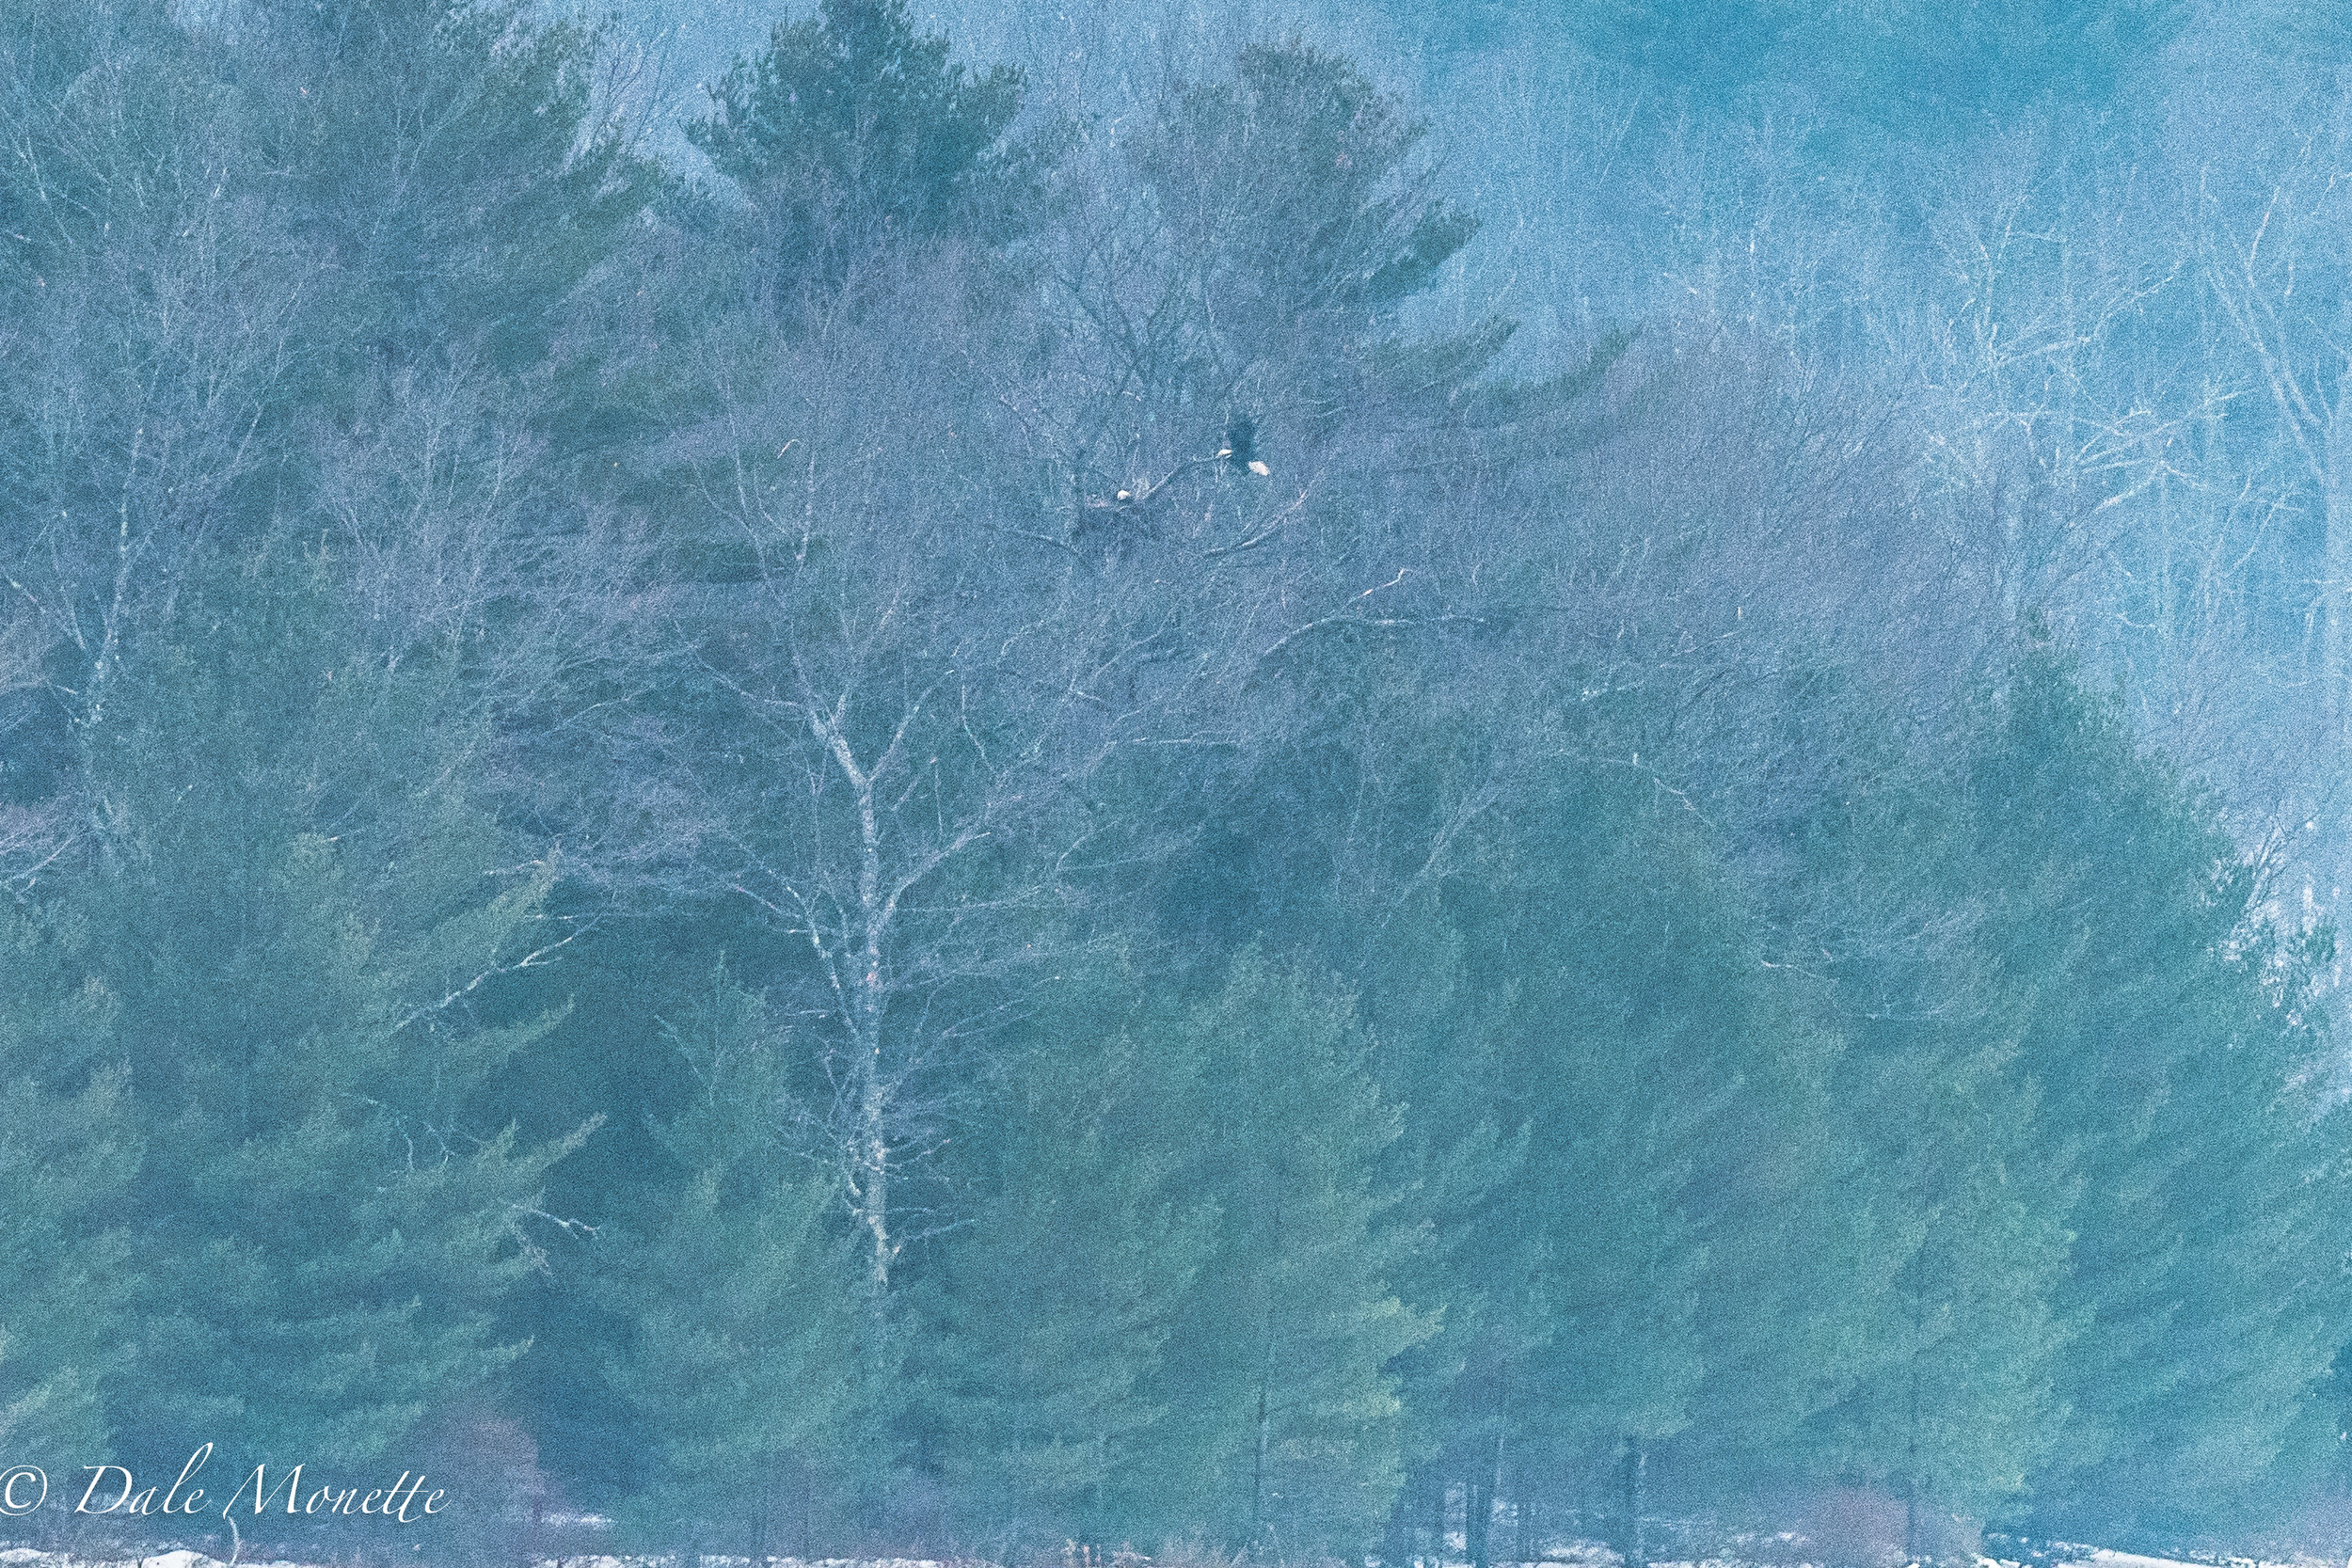 A pair of about 14 bald eagles that call Quabbin reservoir their home.  This particular pair are imprinted on this best and territory and stick here year round.  I made this picture on December 24th, 2016.